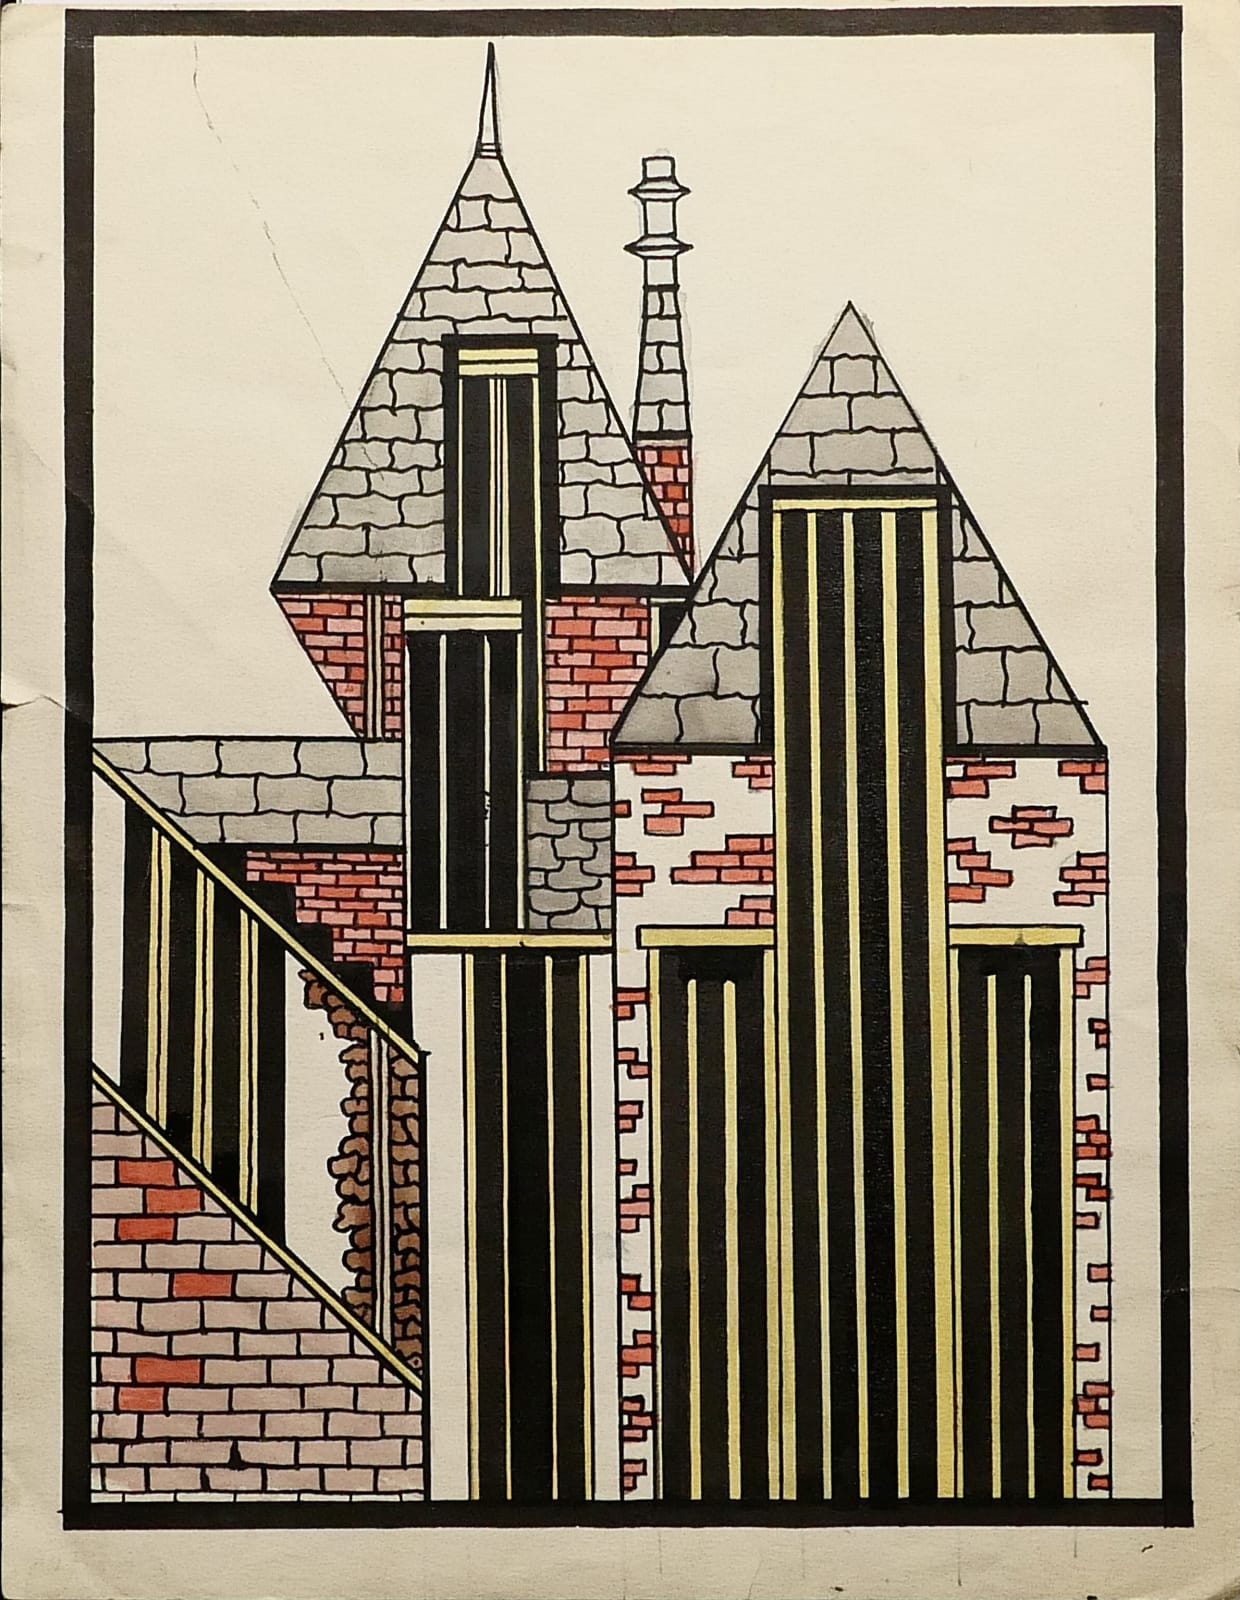 Abstract angular building with brick walls and slate roof tiles, 1960 Ink, pencil and gouache on sketch paper 11 1/2 x 8 3/4 in. (RK 140) $7,000